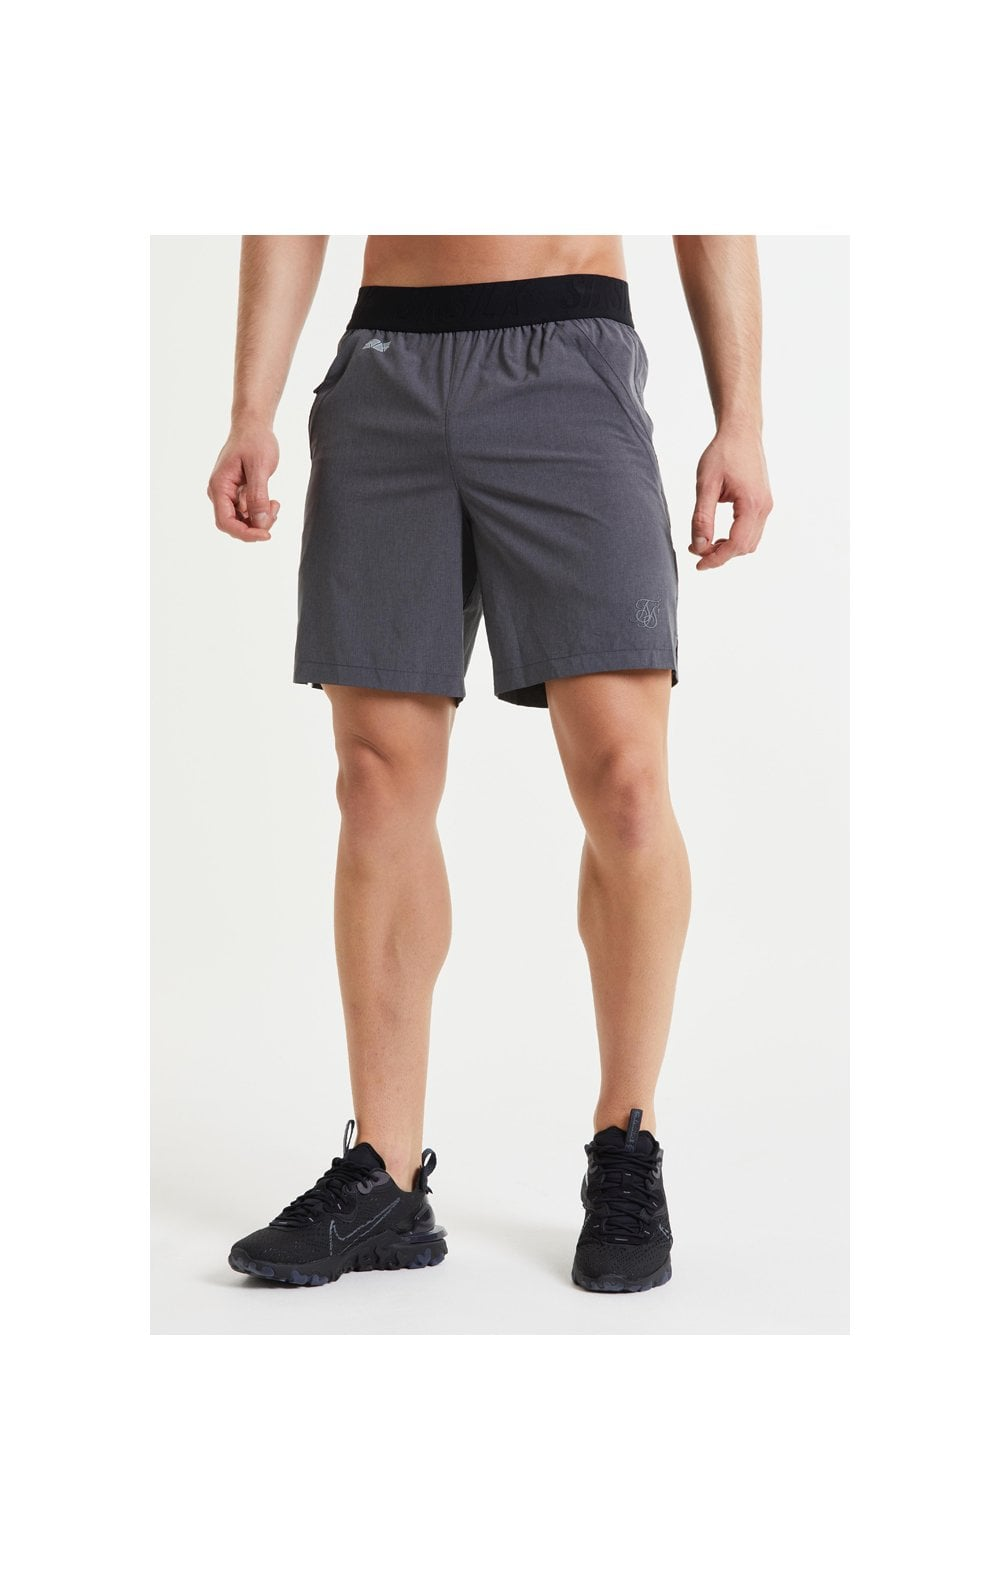 Load image into Gallery viewer, SikSilk Pressure Woven Long Shorts - Charcoal Marl (3)